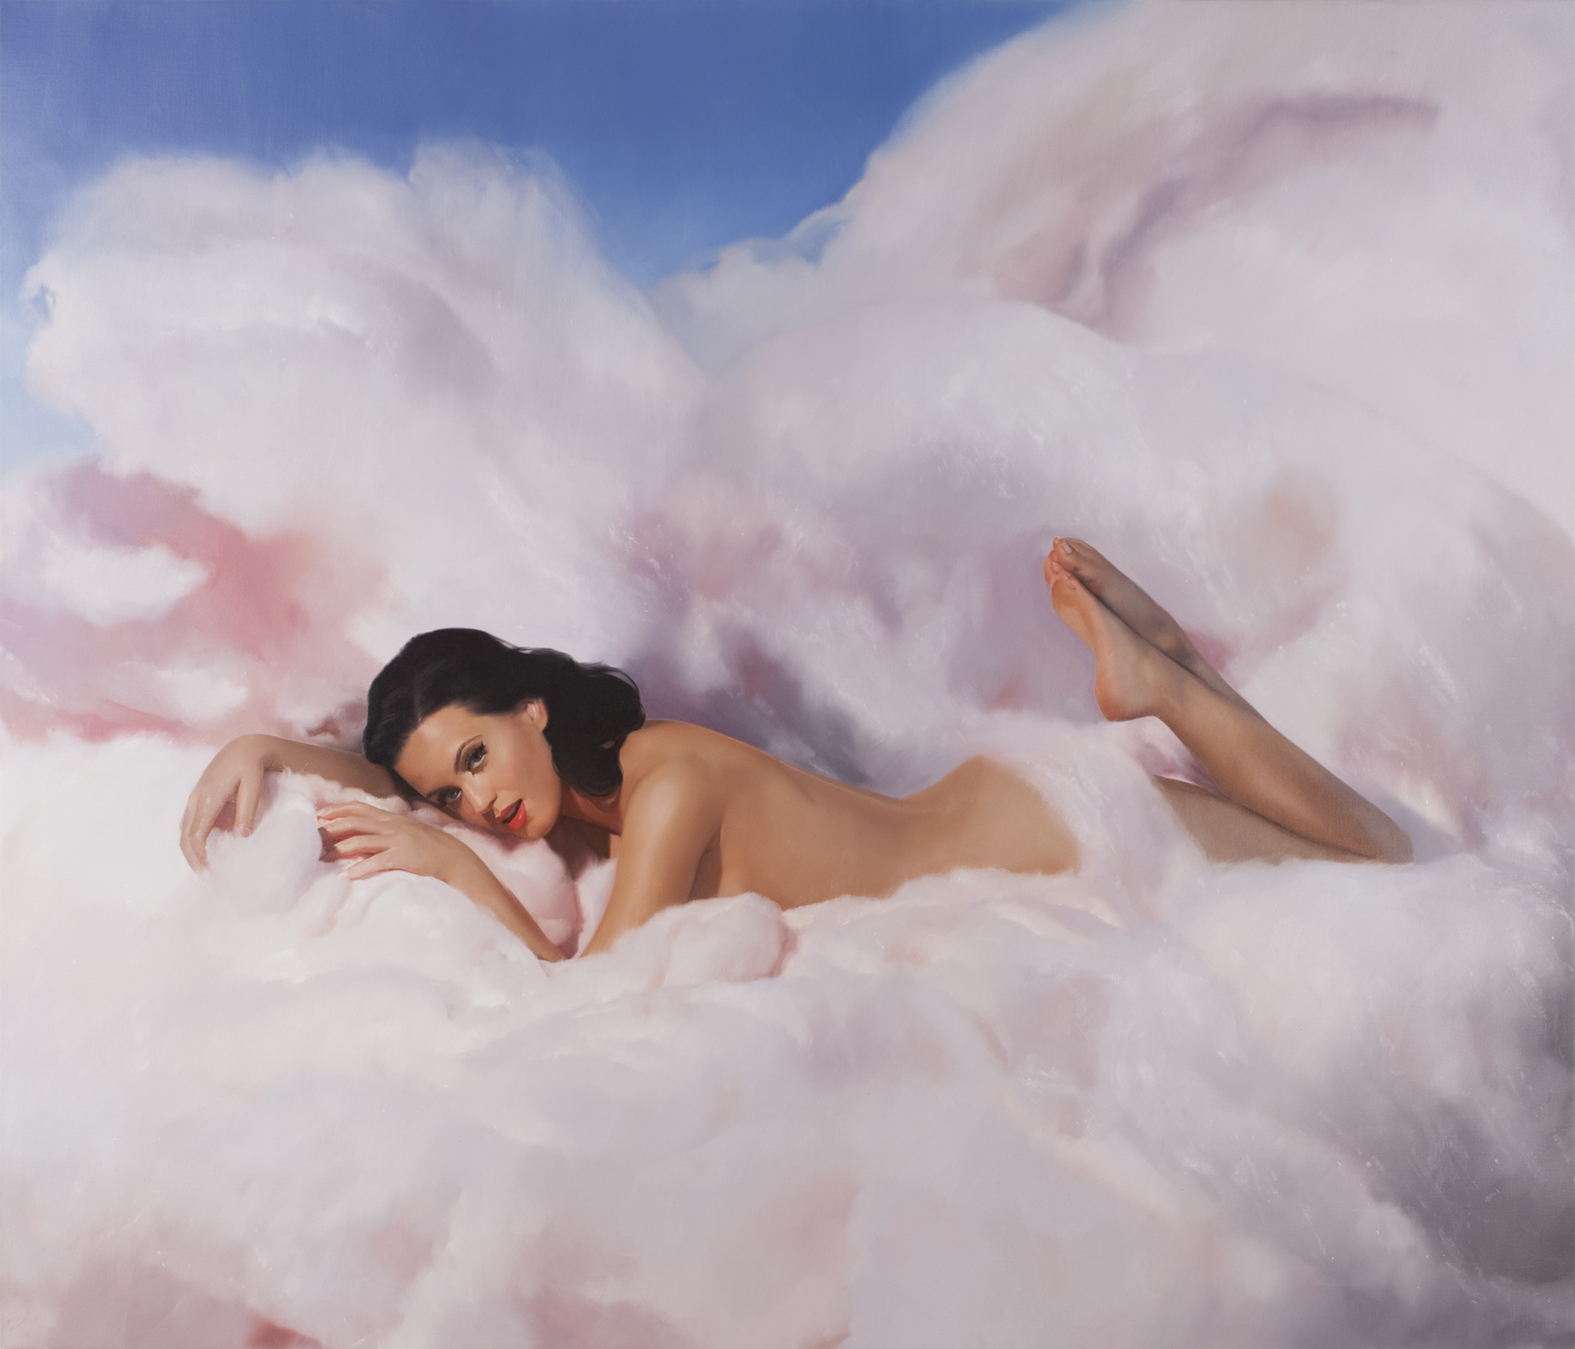 Will Cotton - Cotton Candy Katy - 2010 - courtesy the artist and Mary Boone Gallery, New York